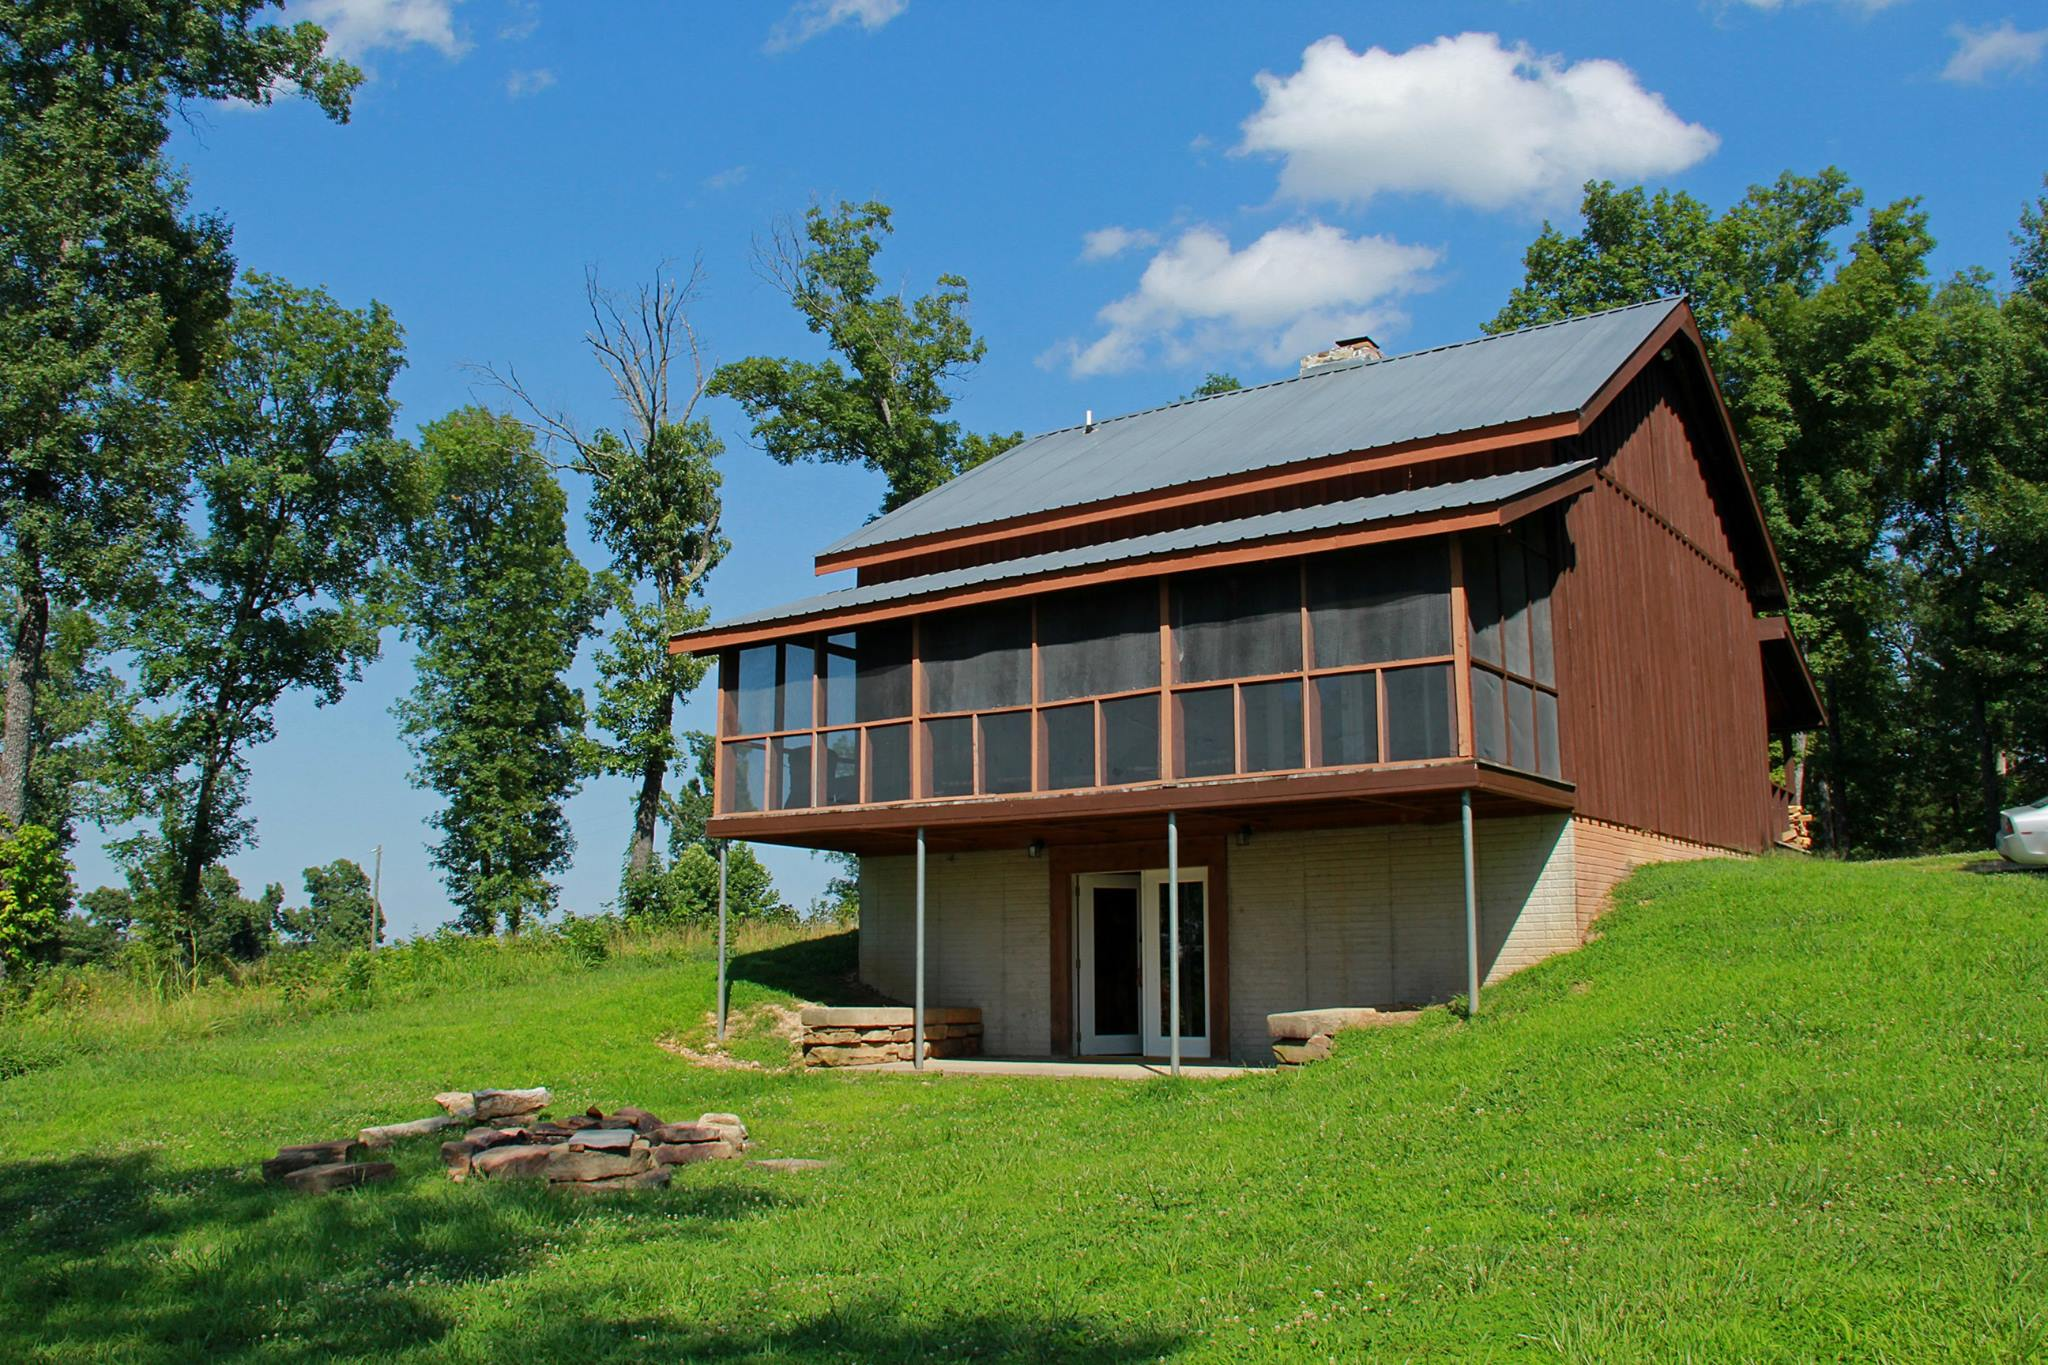 Favorite vacation cabin rental for trail rides, canoe trips, and bird watching.